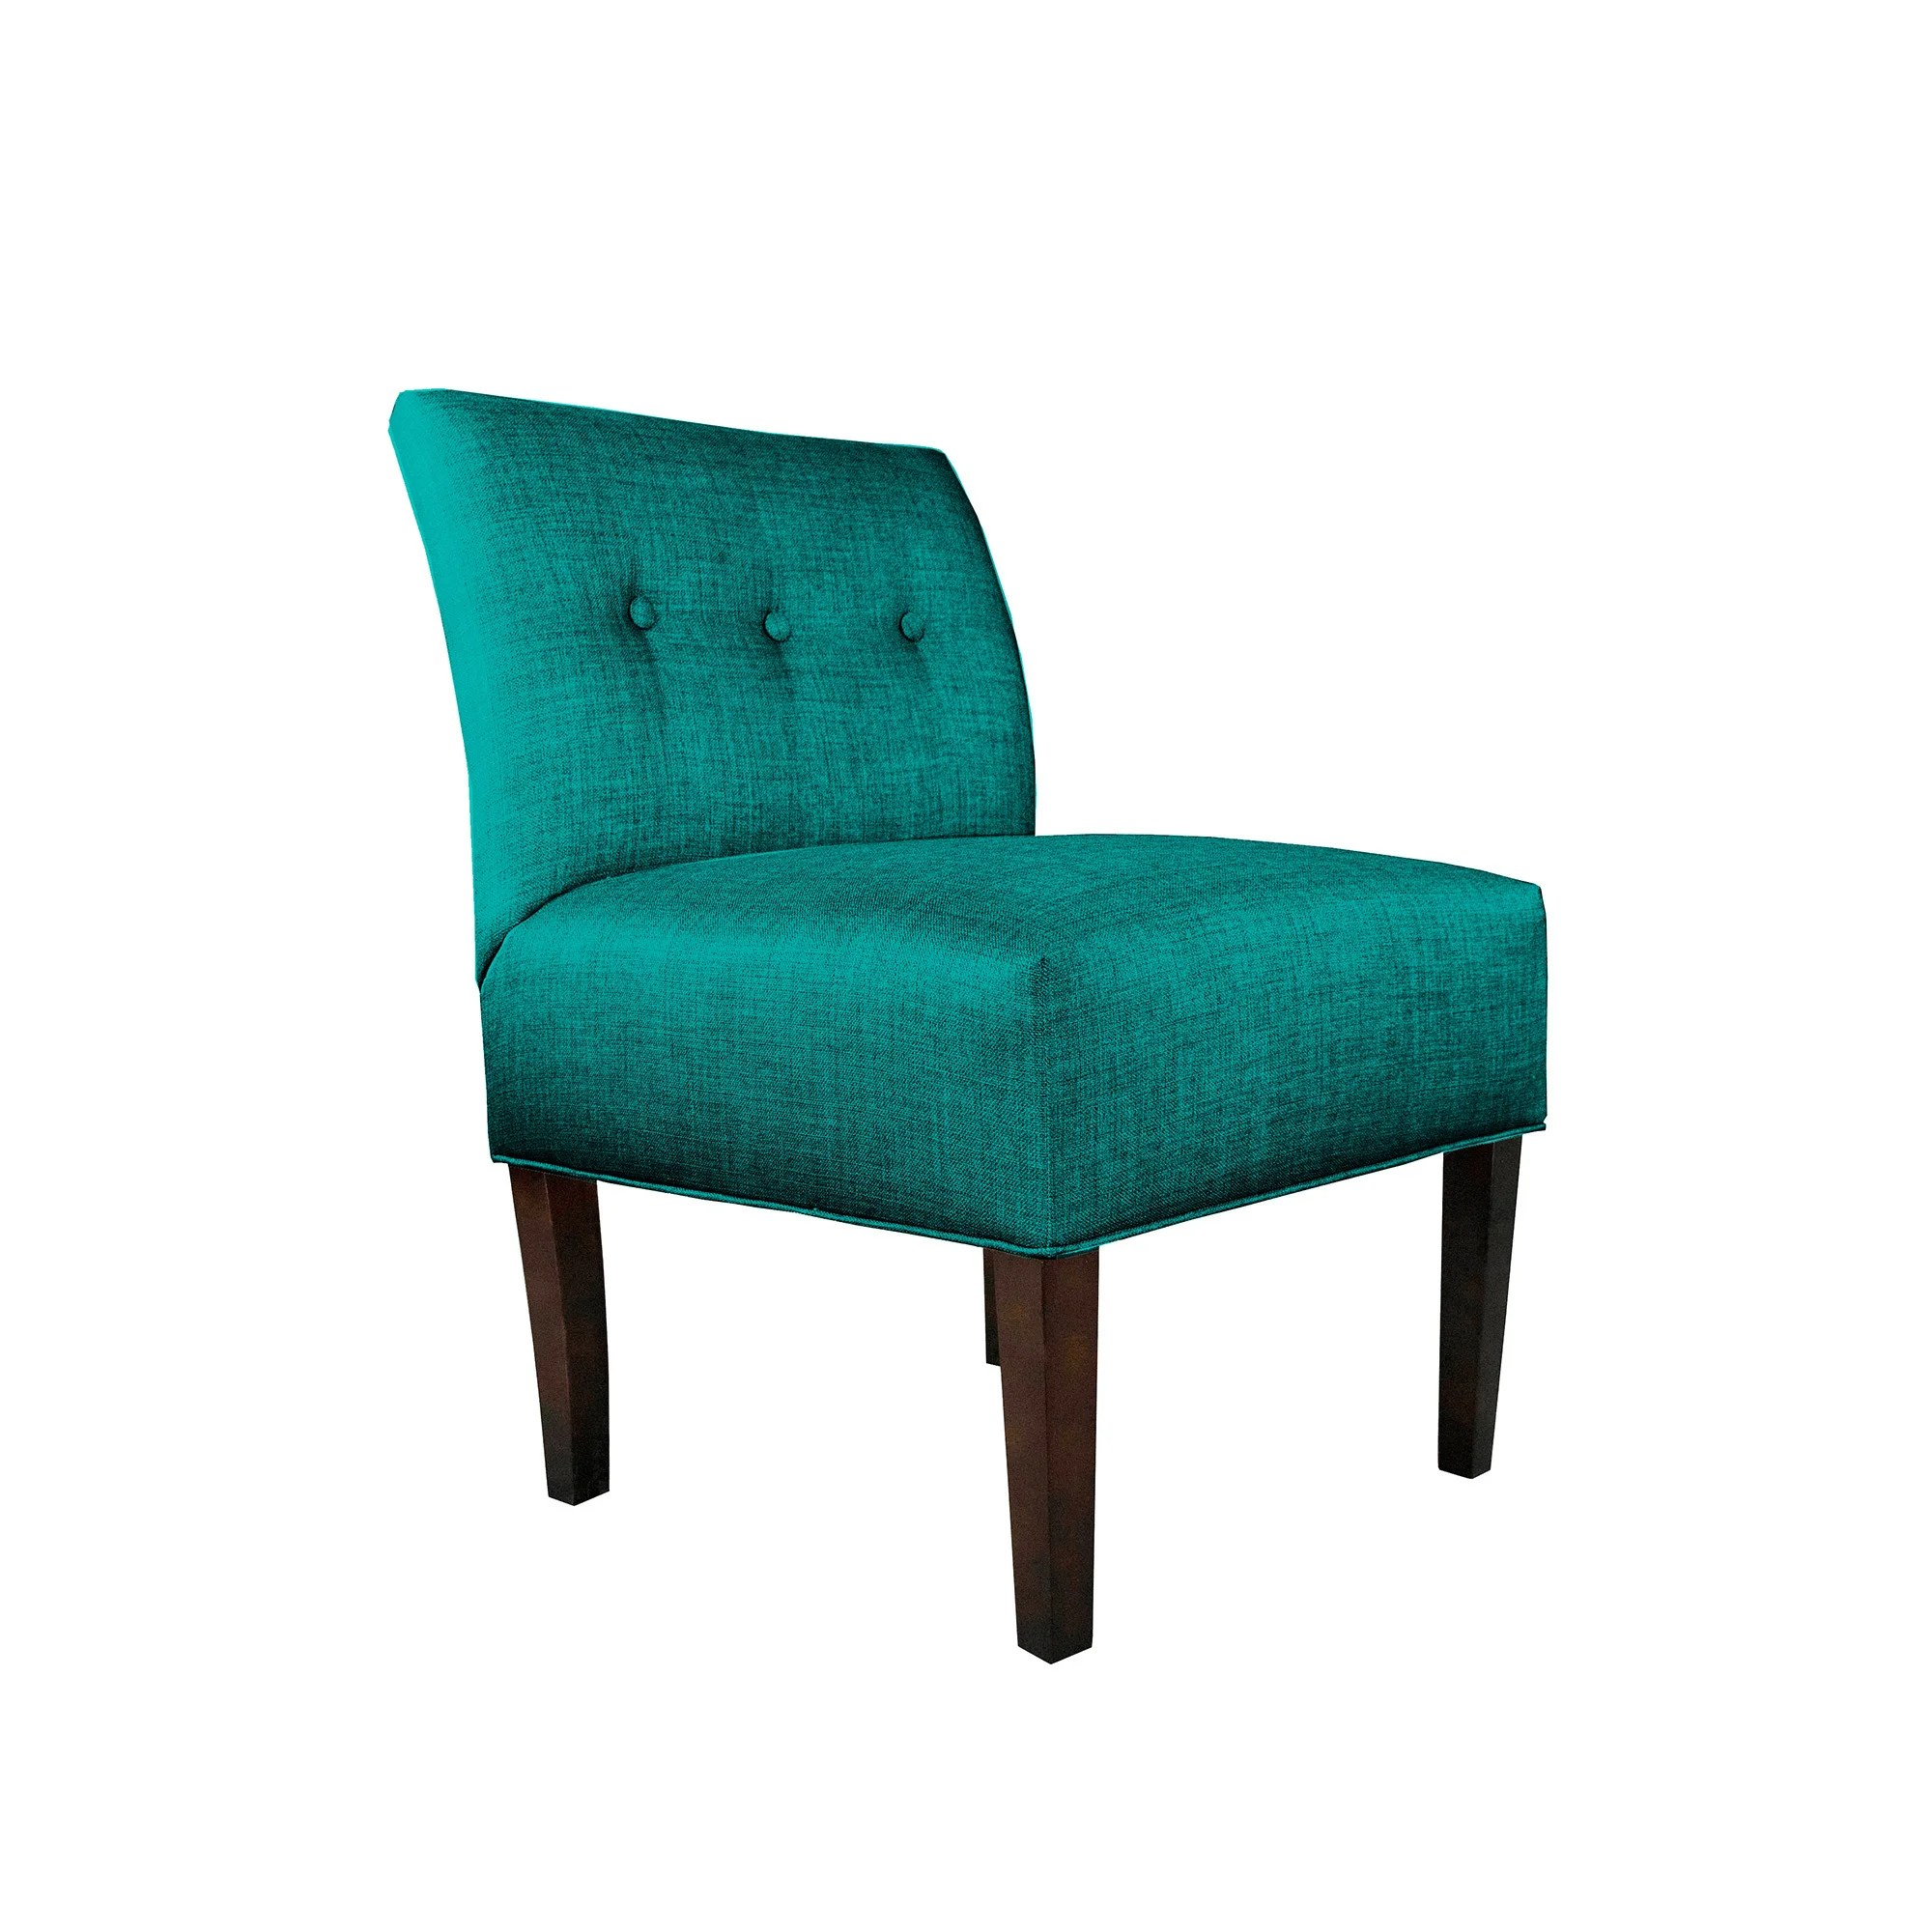 tufted blue chair indoor dining pads mjl furniture samantha brown fabric wood button